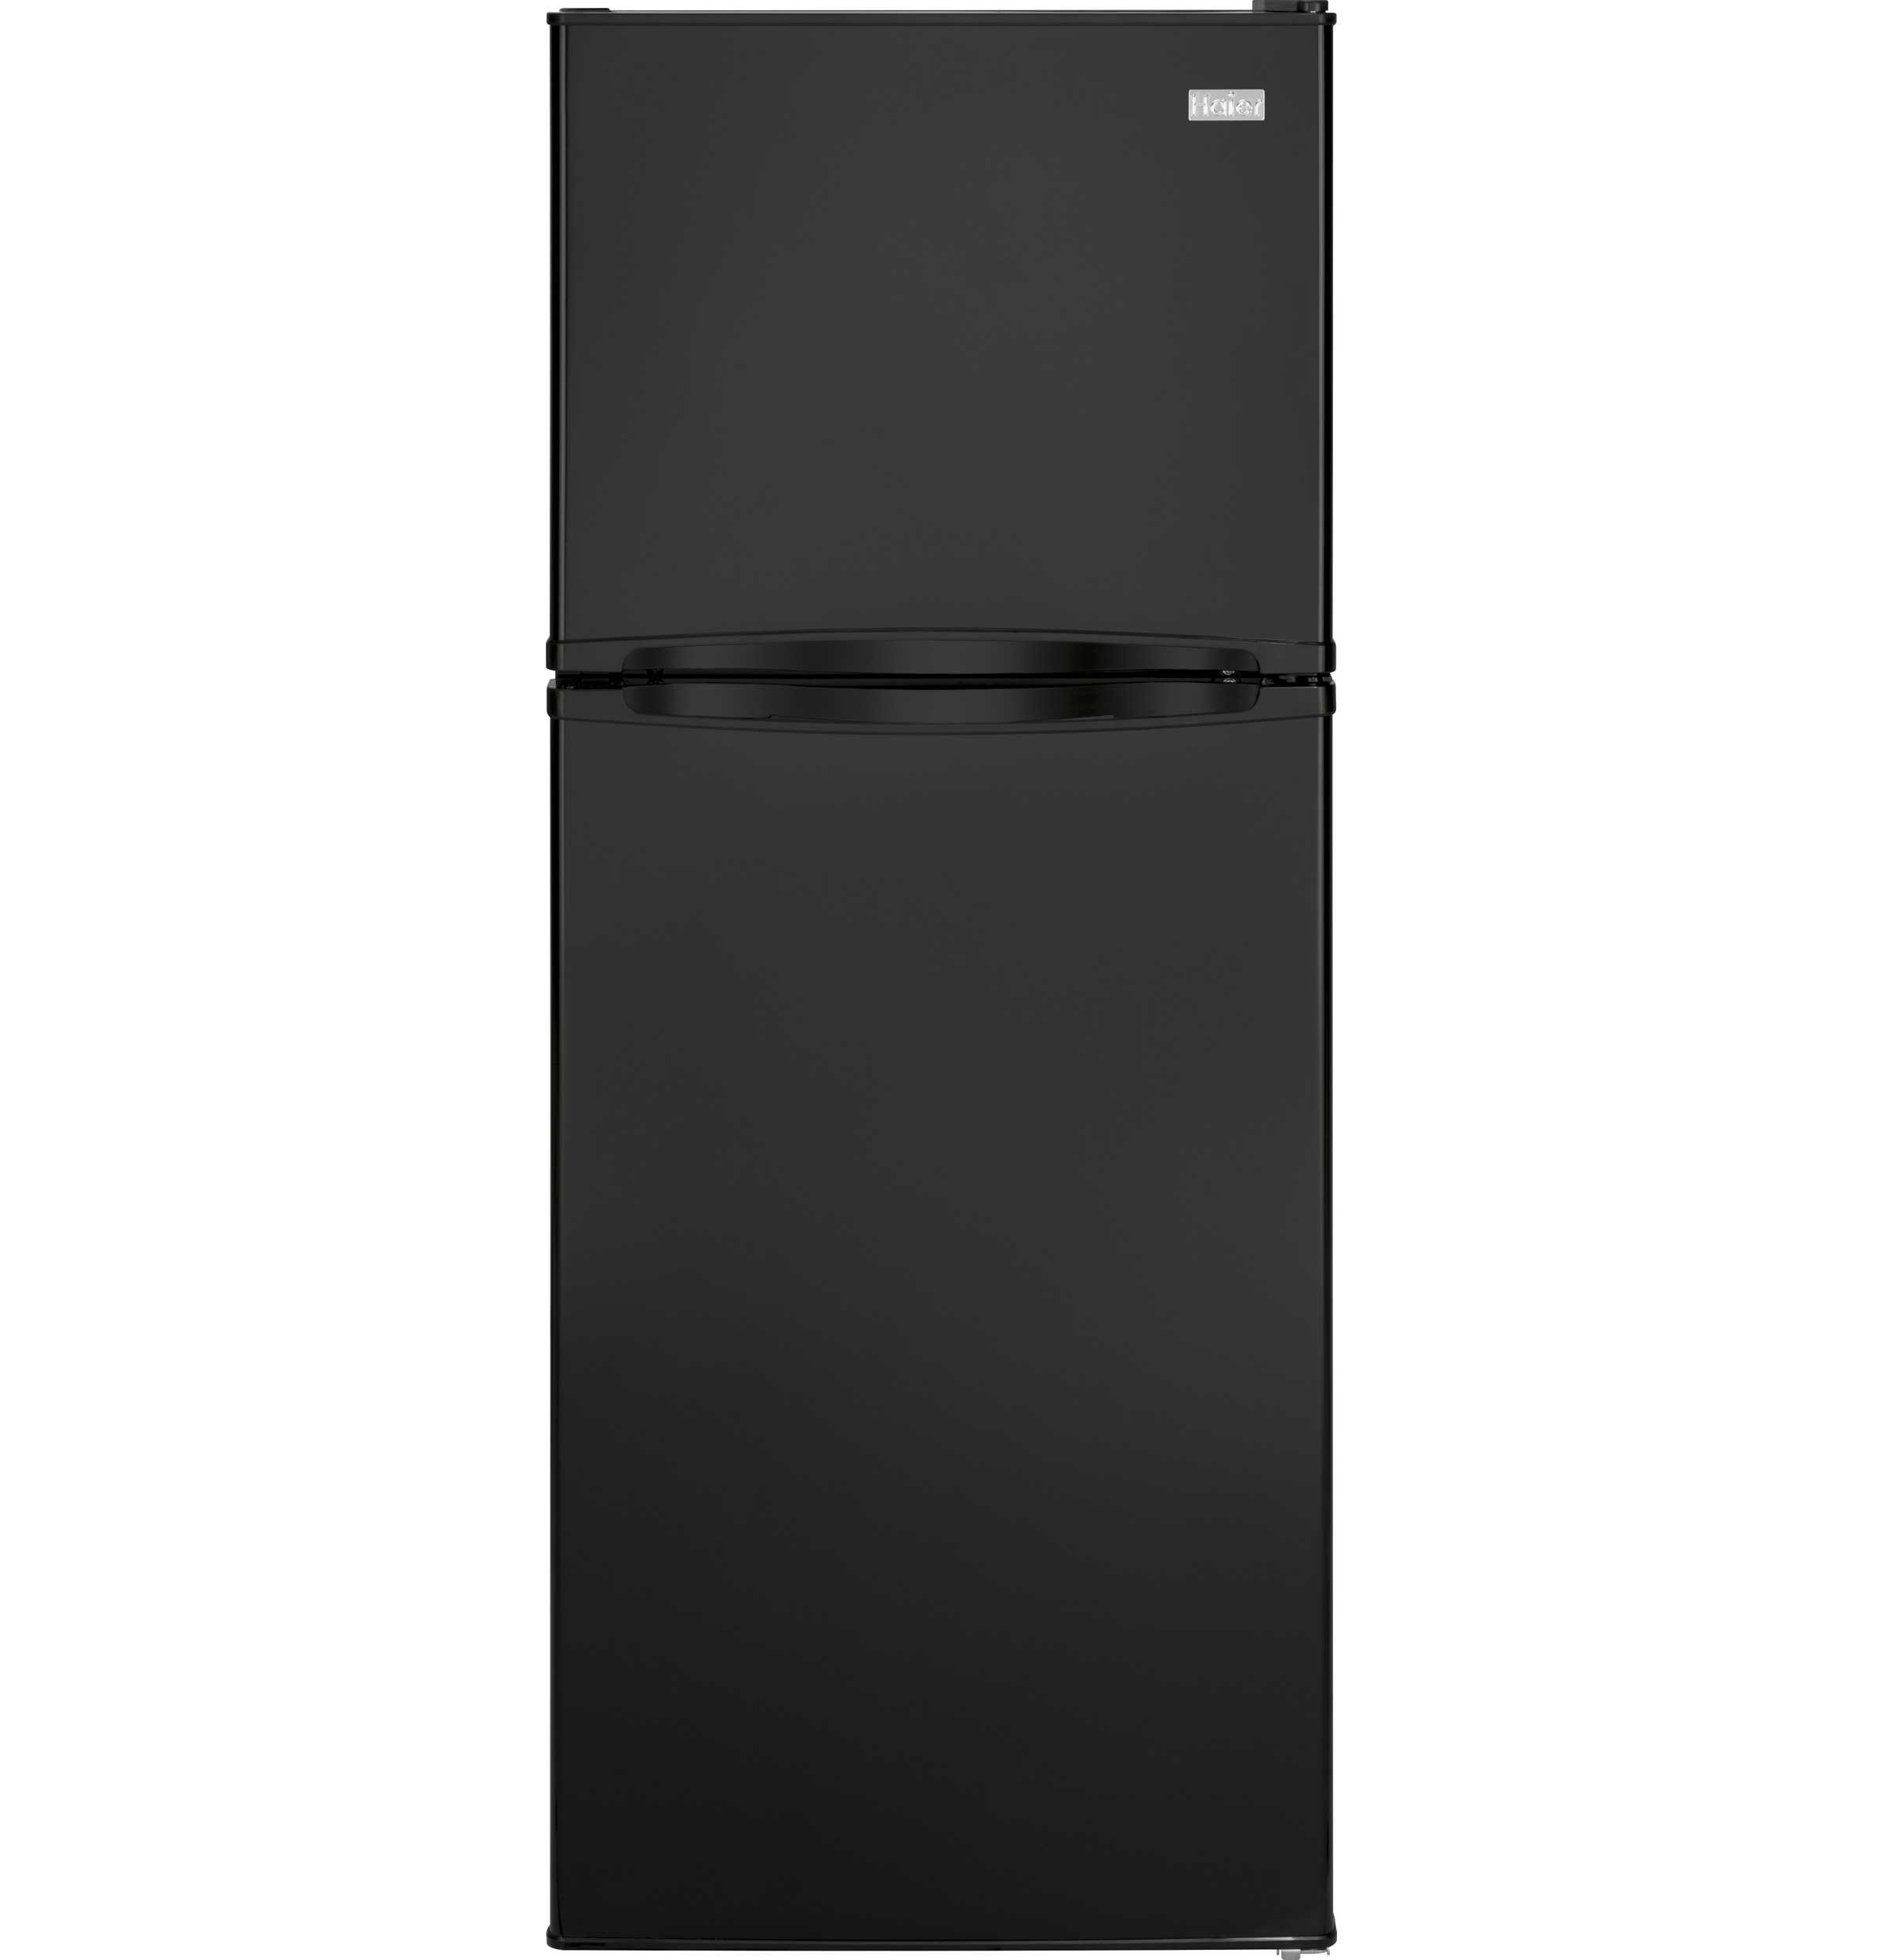 HA10TG31SB -10.1 Cu. Ft. Top Freezer Refrigerator | Haier ... on